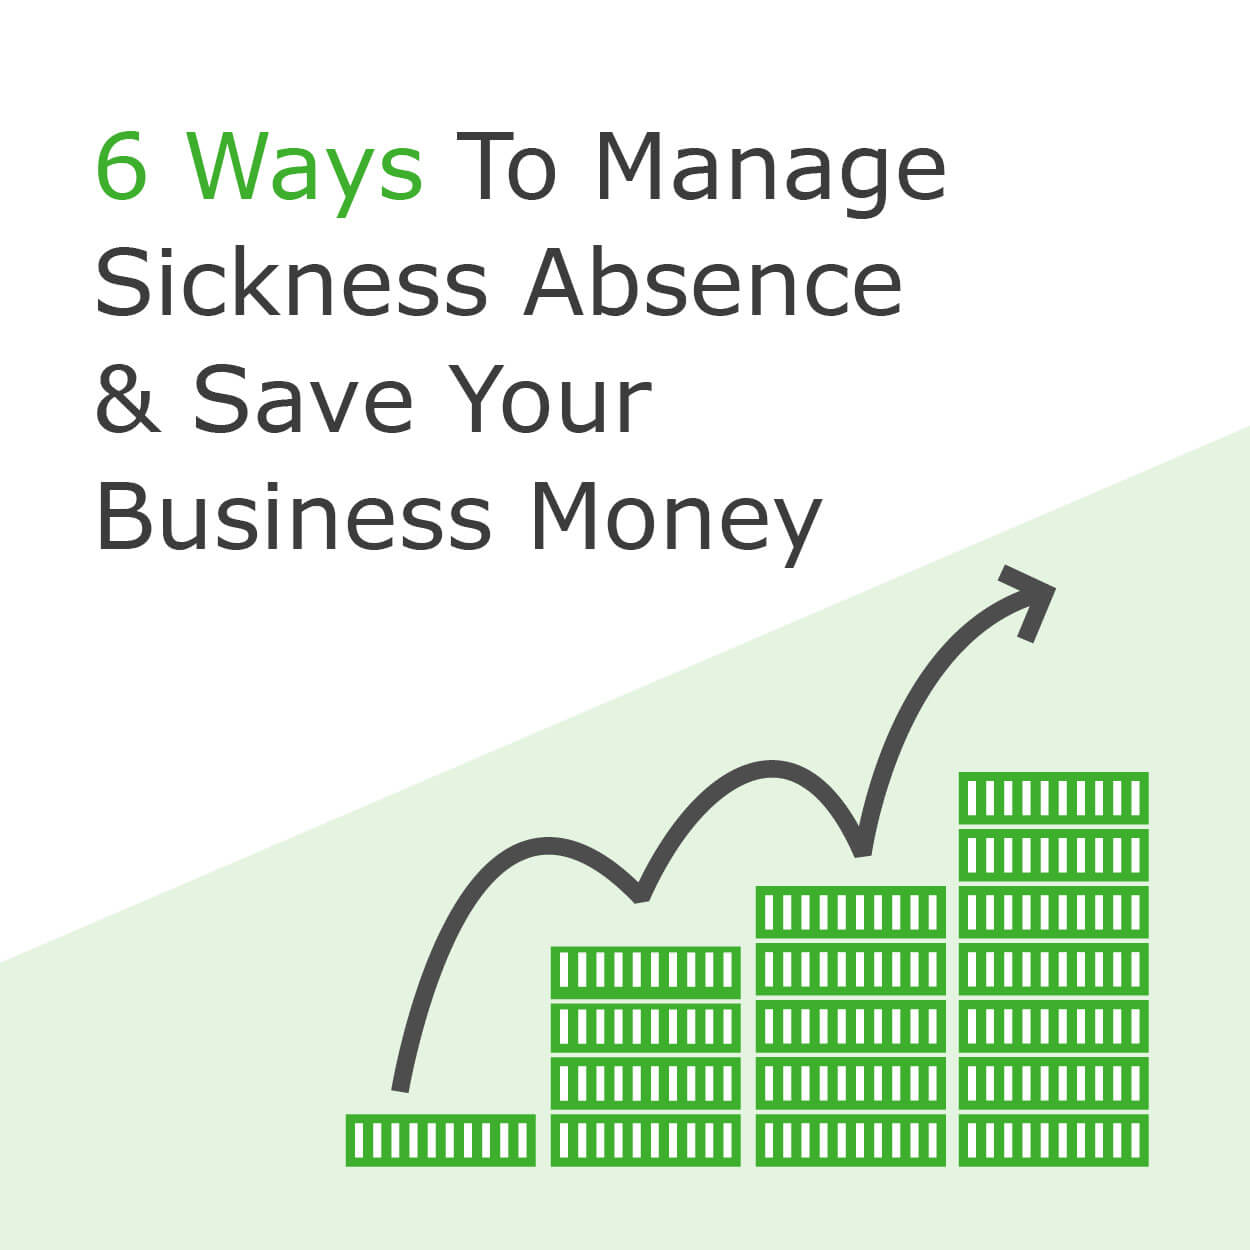 6 Ways To Manage Sickness Absence And Save Your Business Money